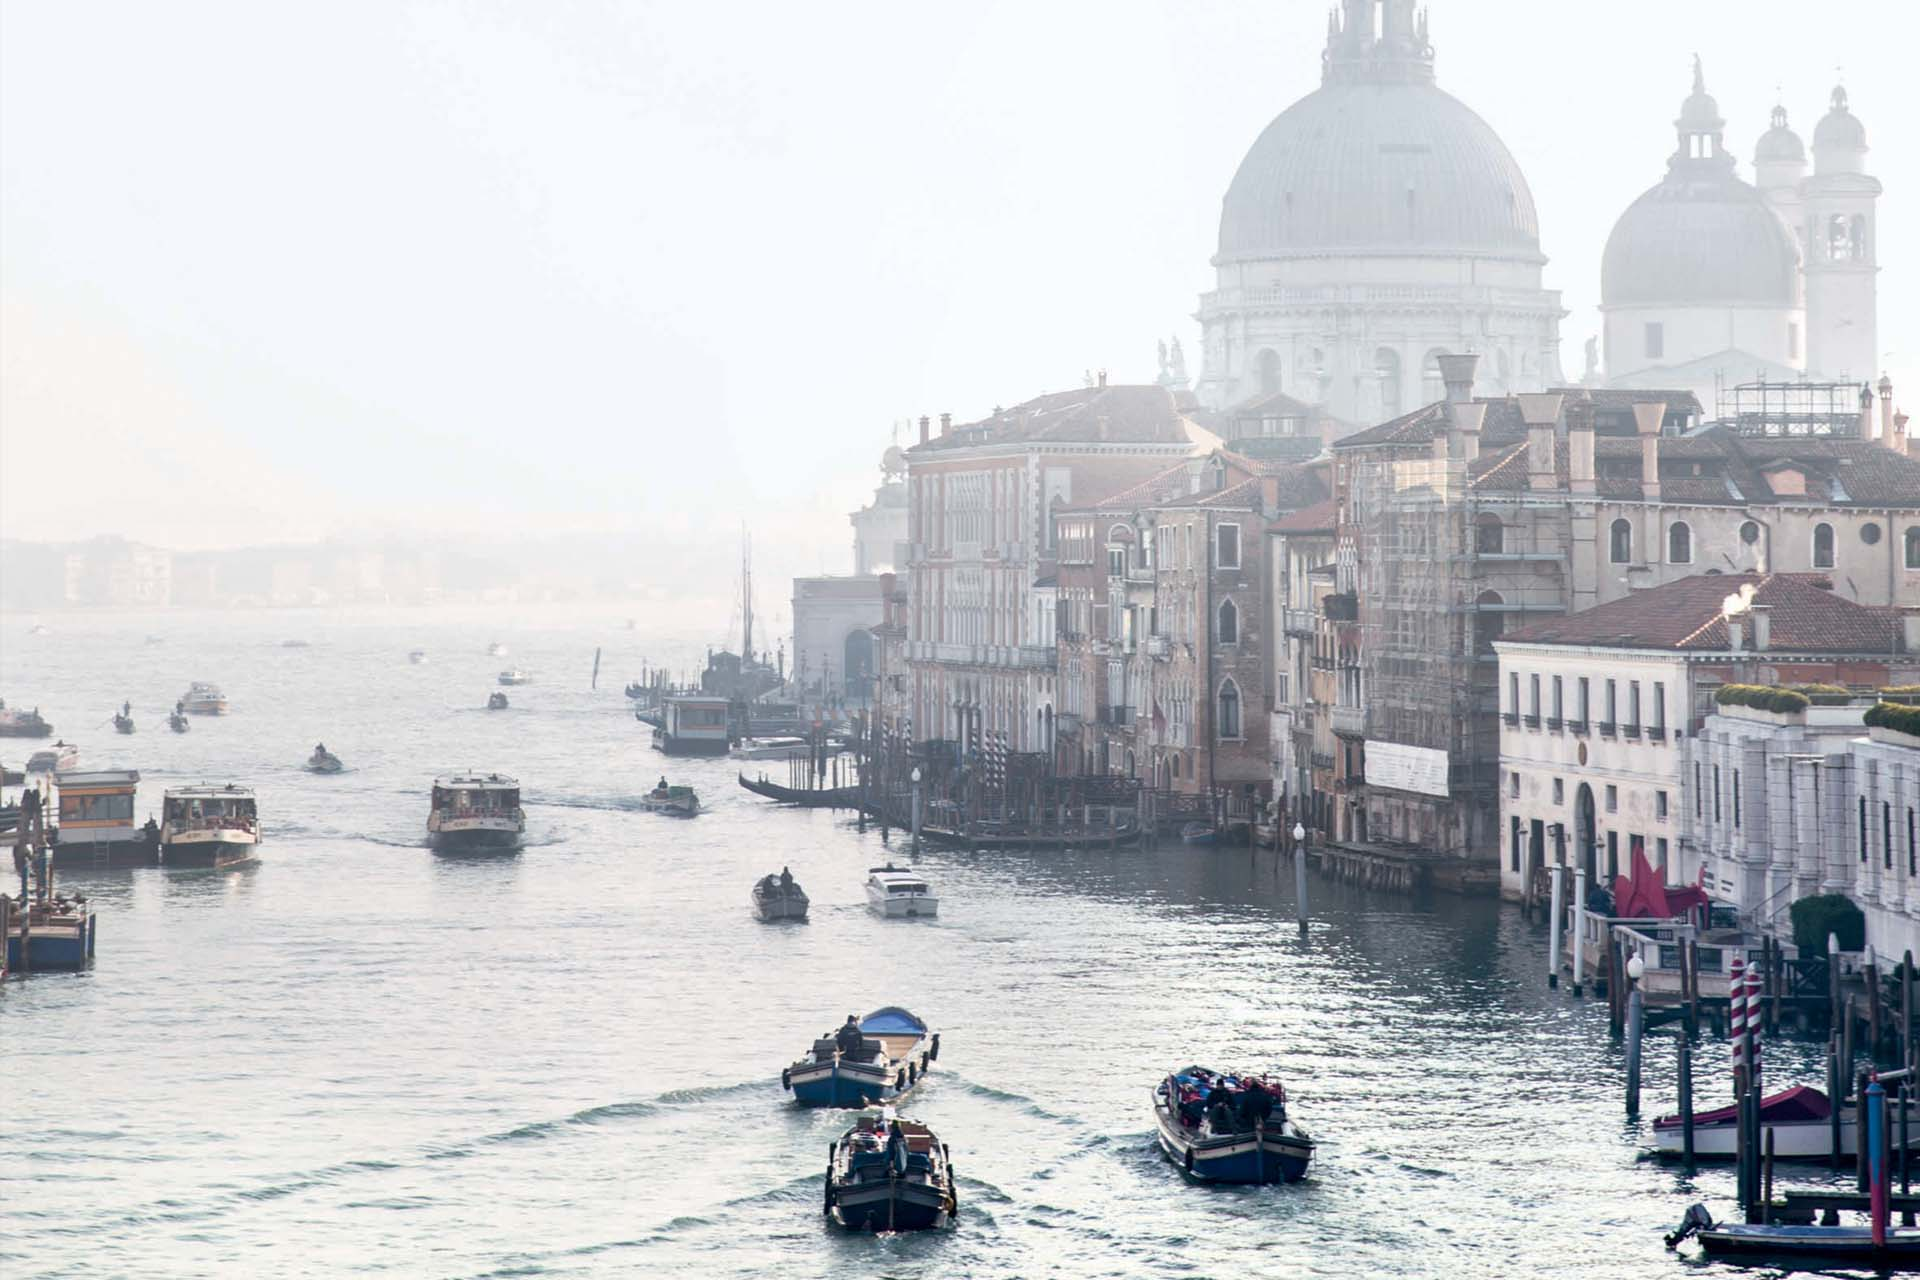 Casa Mia – How Venice Came To Be My Home